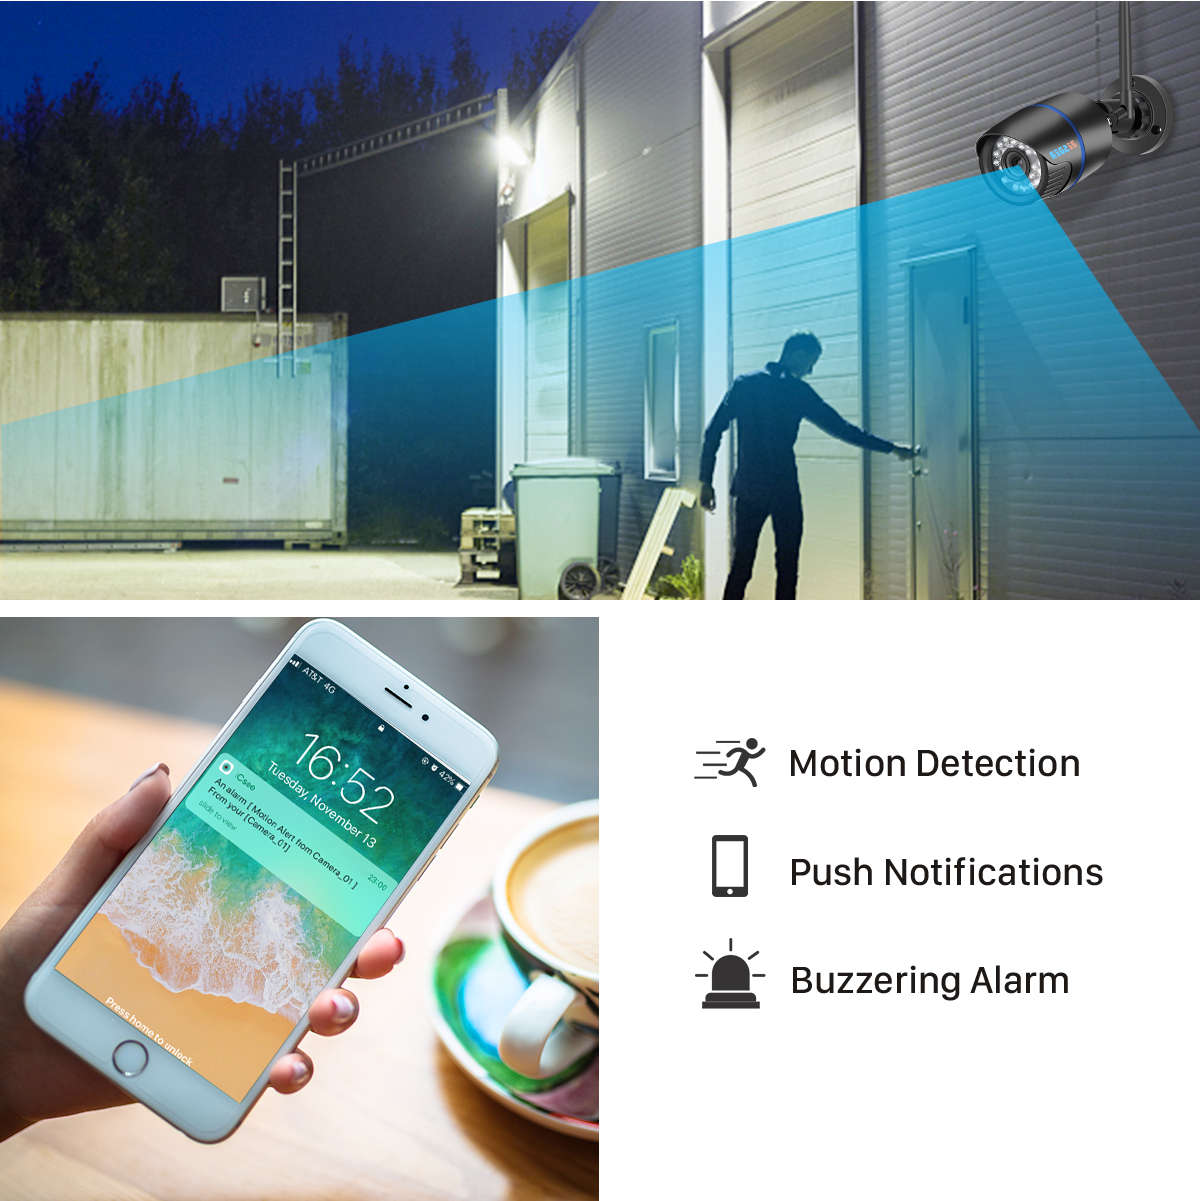 H786f5028d9c04c6e9b09f03efb4df554w BESDER iCsee Audio Security IP Camera 1080P Wireless Wired ONVIF CCTV Surveillance Outdoor Wifi Camera With SD Card Slot Max 64G